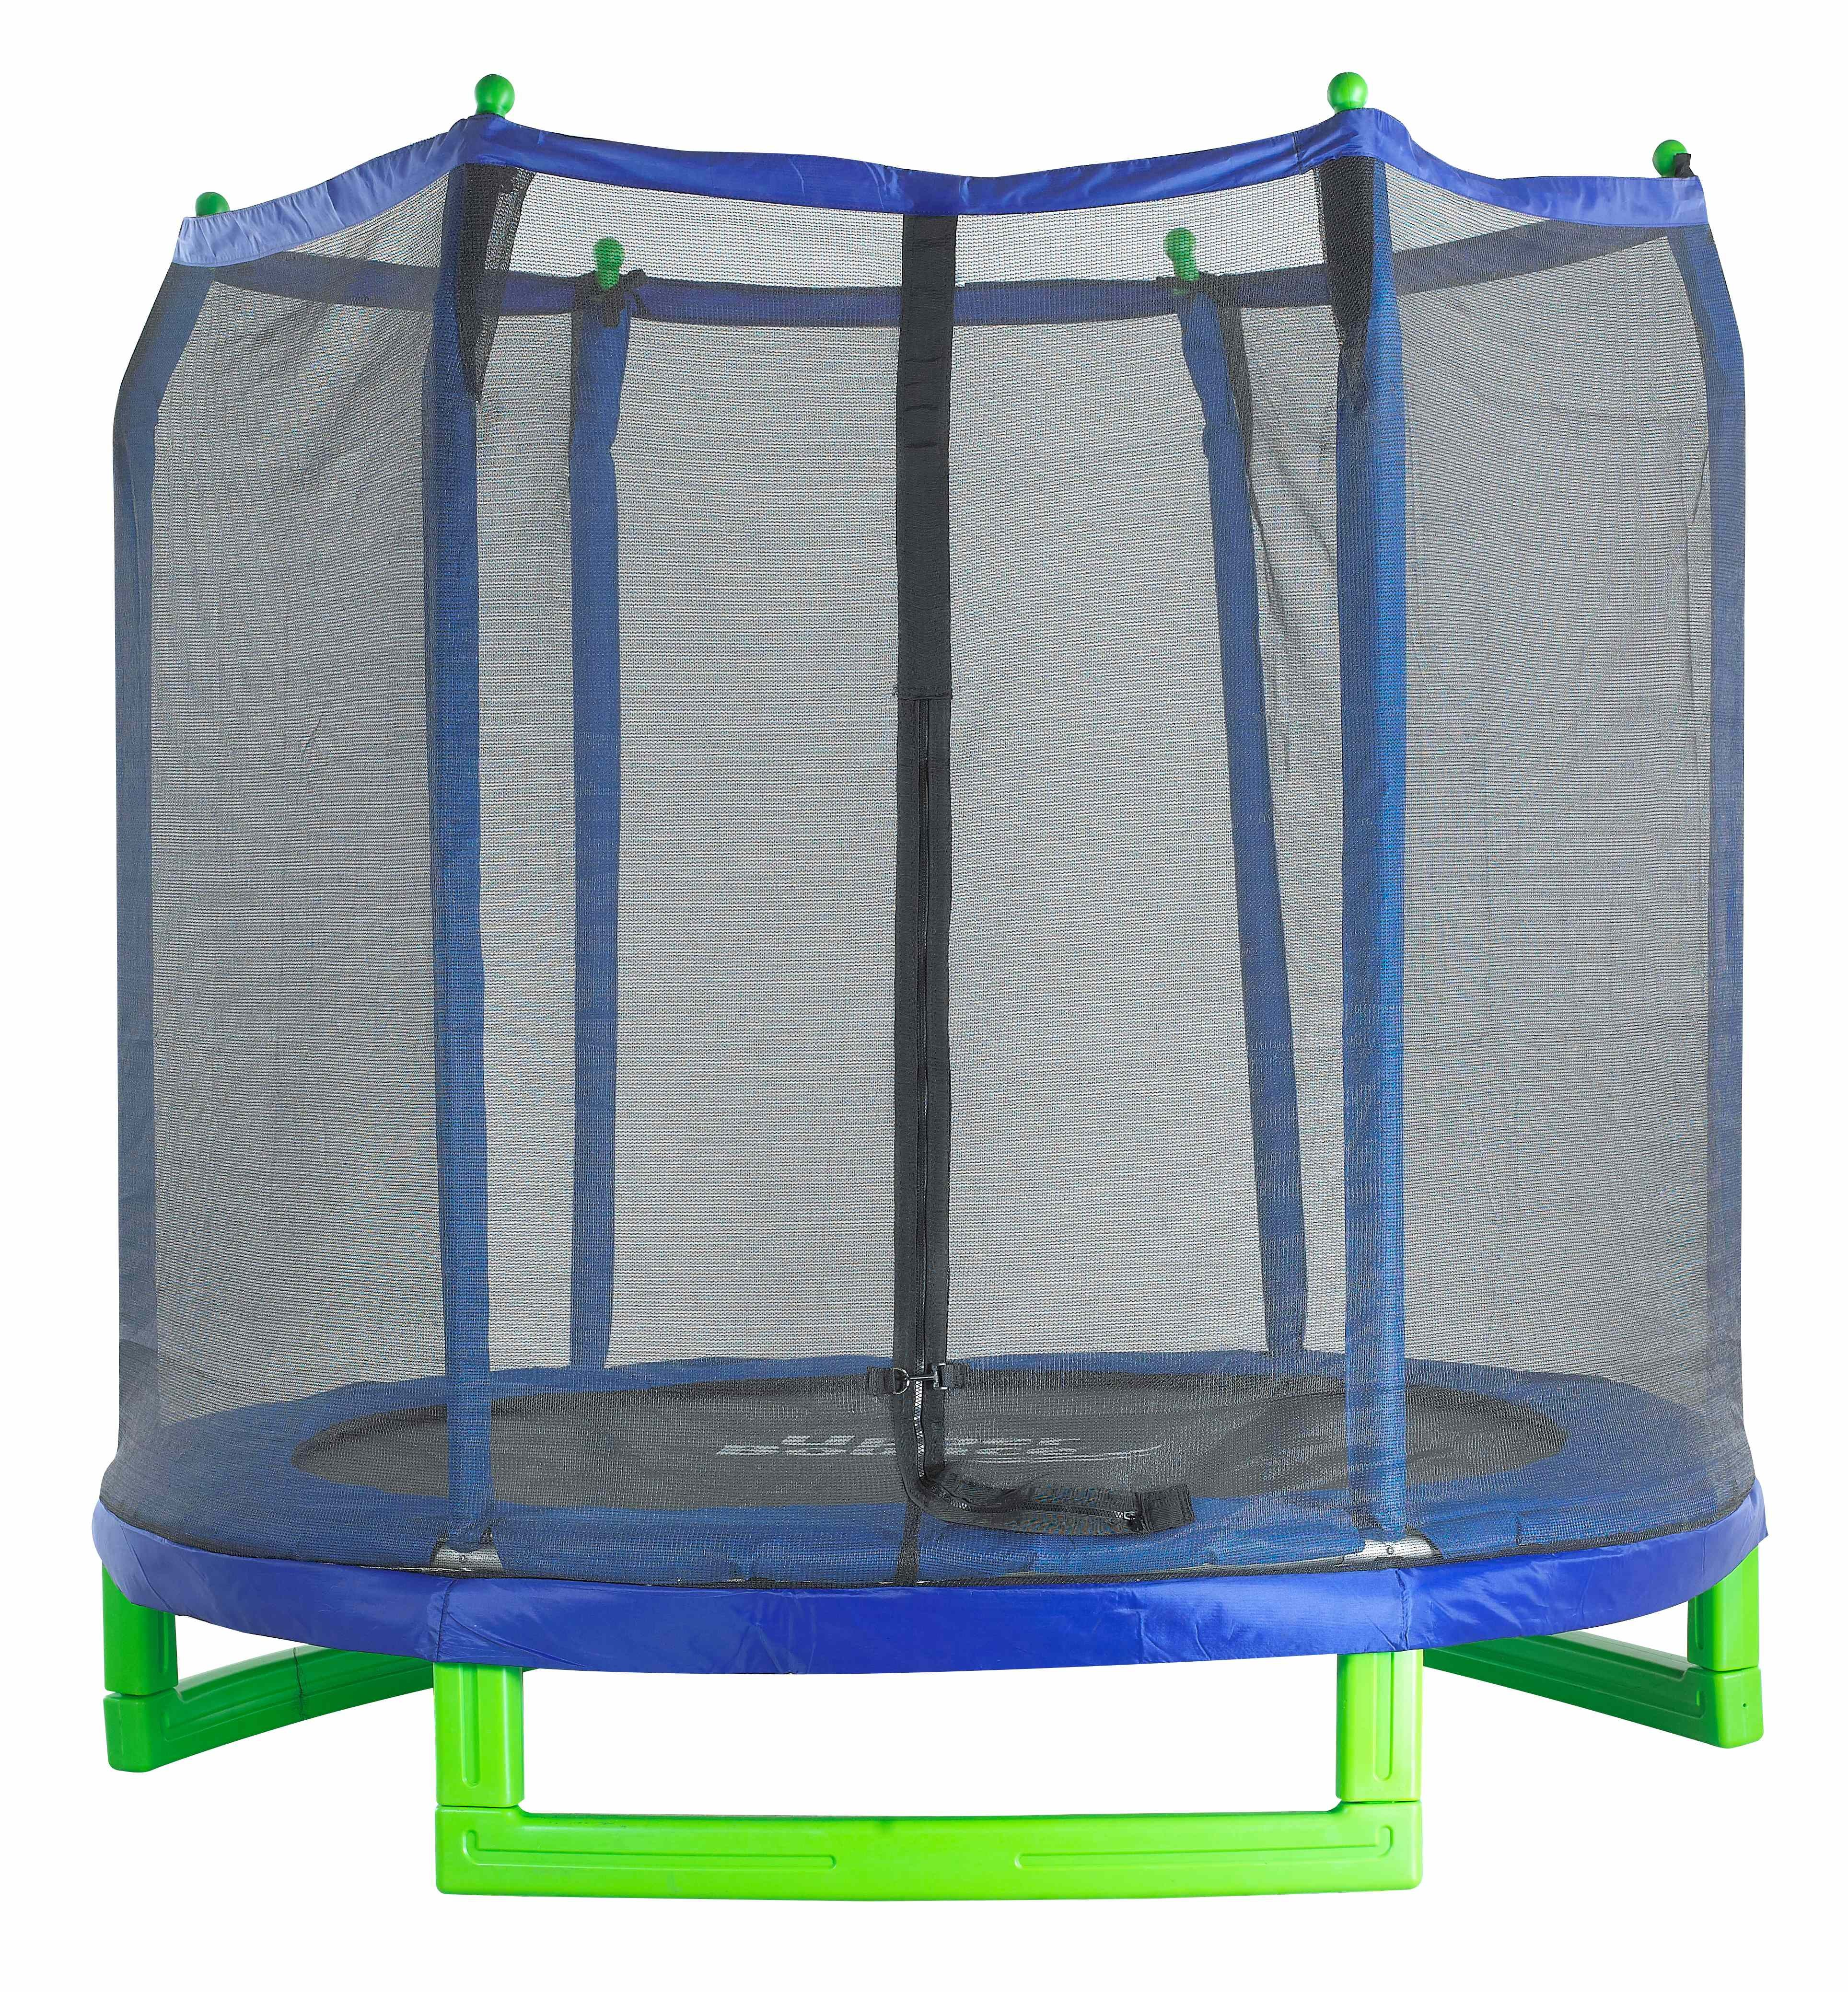 7Ft Large Trampoline and Enclosure Set | Garden & Outdoor Trampoline with Safety Net, Mat, Pad | Upper Bounce